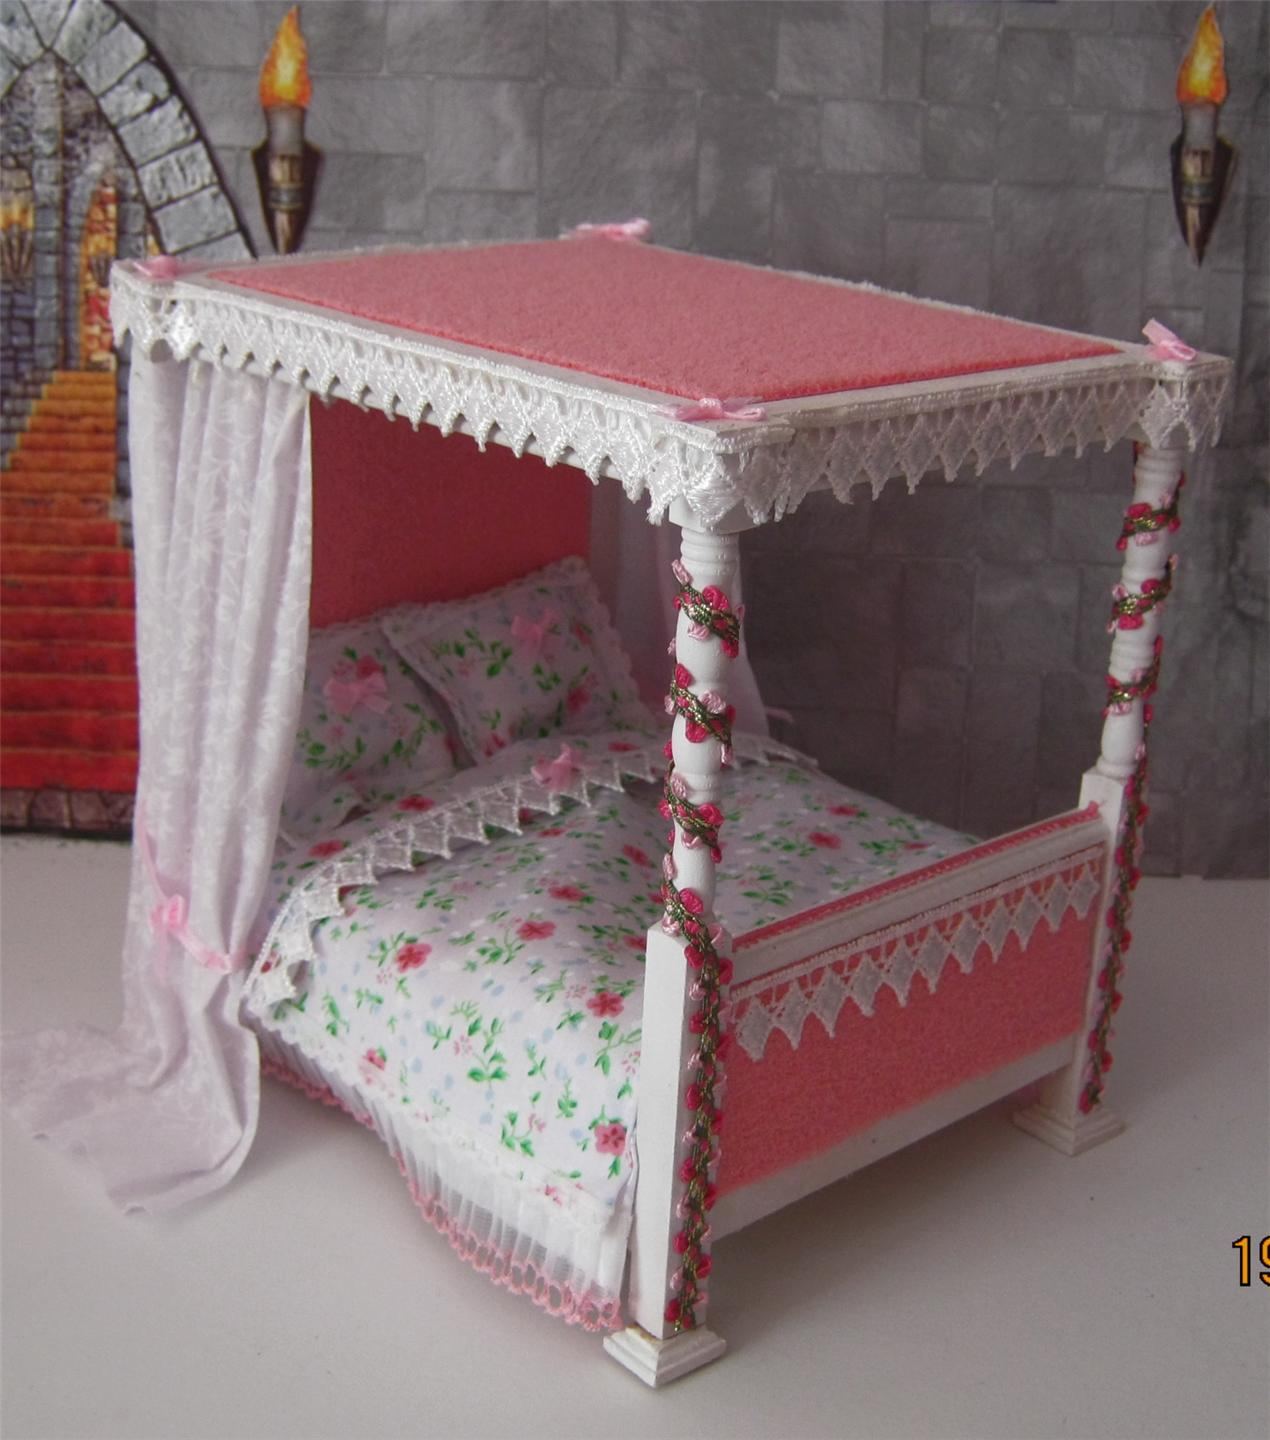 4 Poster Princess Bed Doll House Castle Fantasy Princess Fairytale 4 Poster Bed